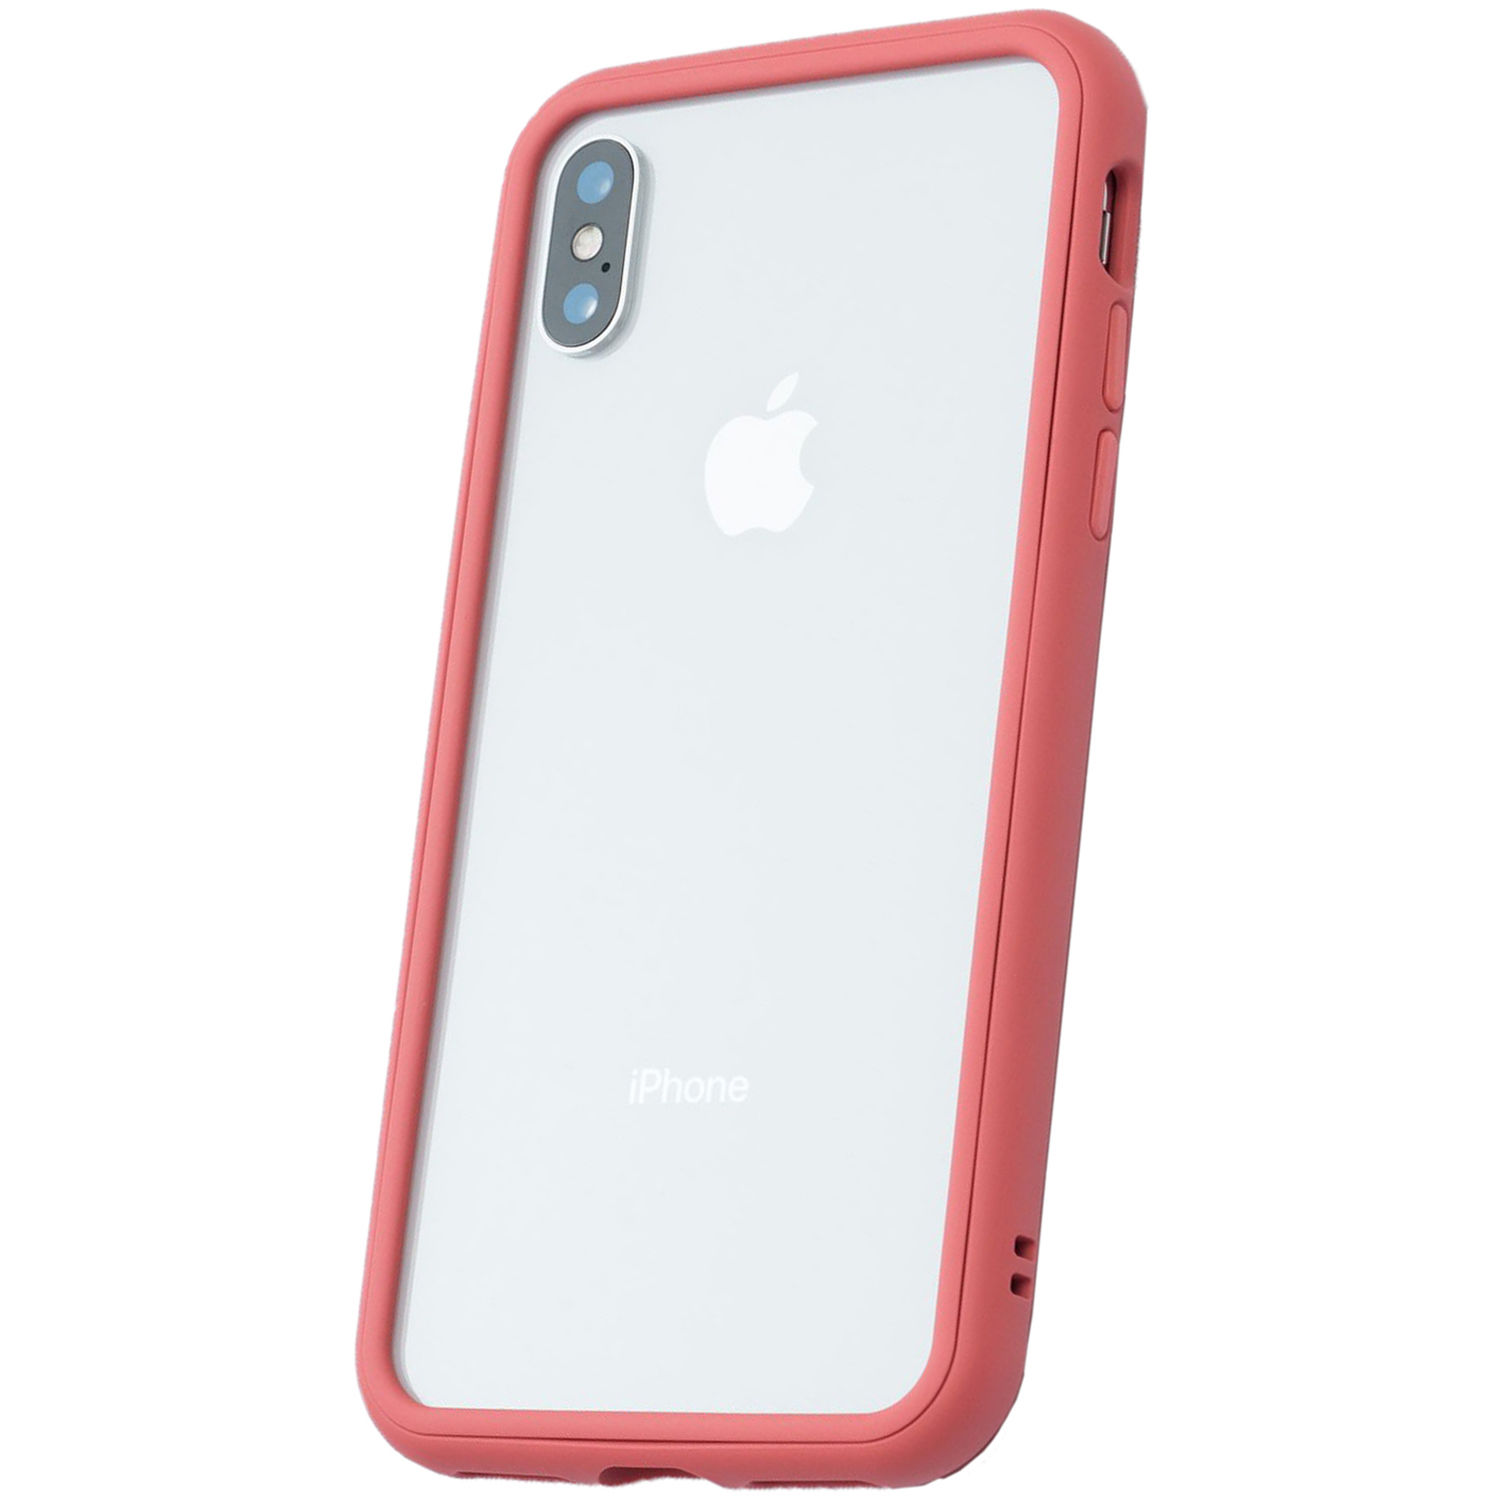 low priced c954a c441c RhinoShield Mod Case for iPhone X (Coral Pink, Clear Backplate)